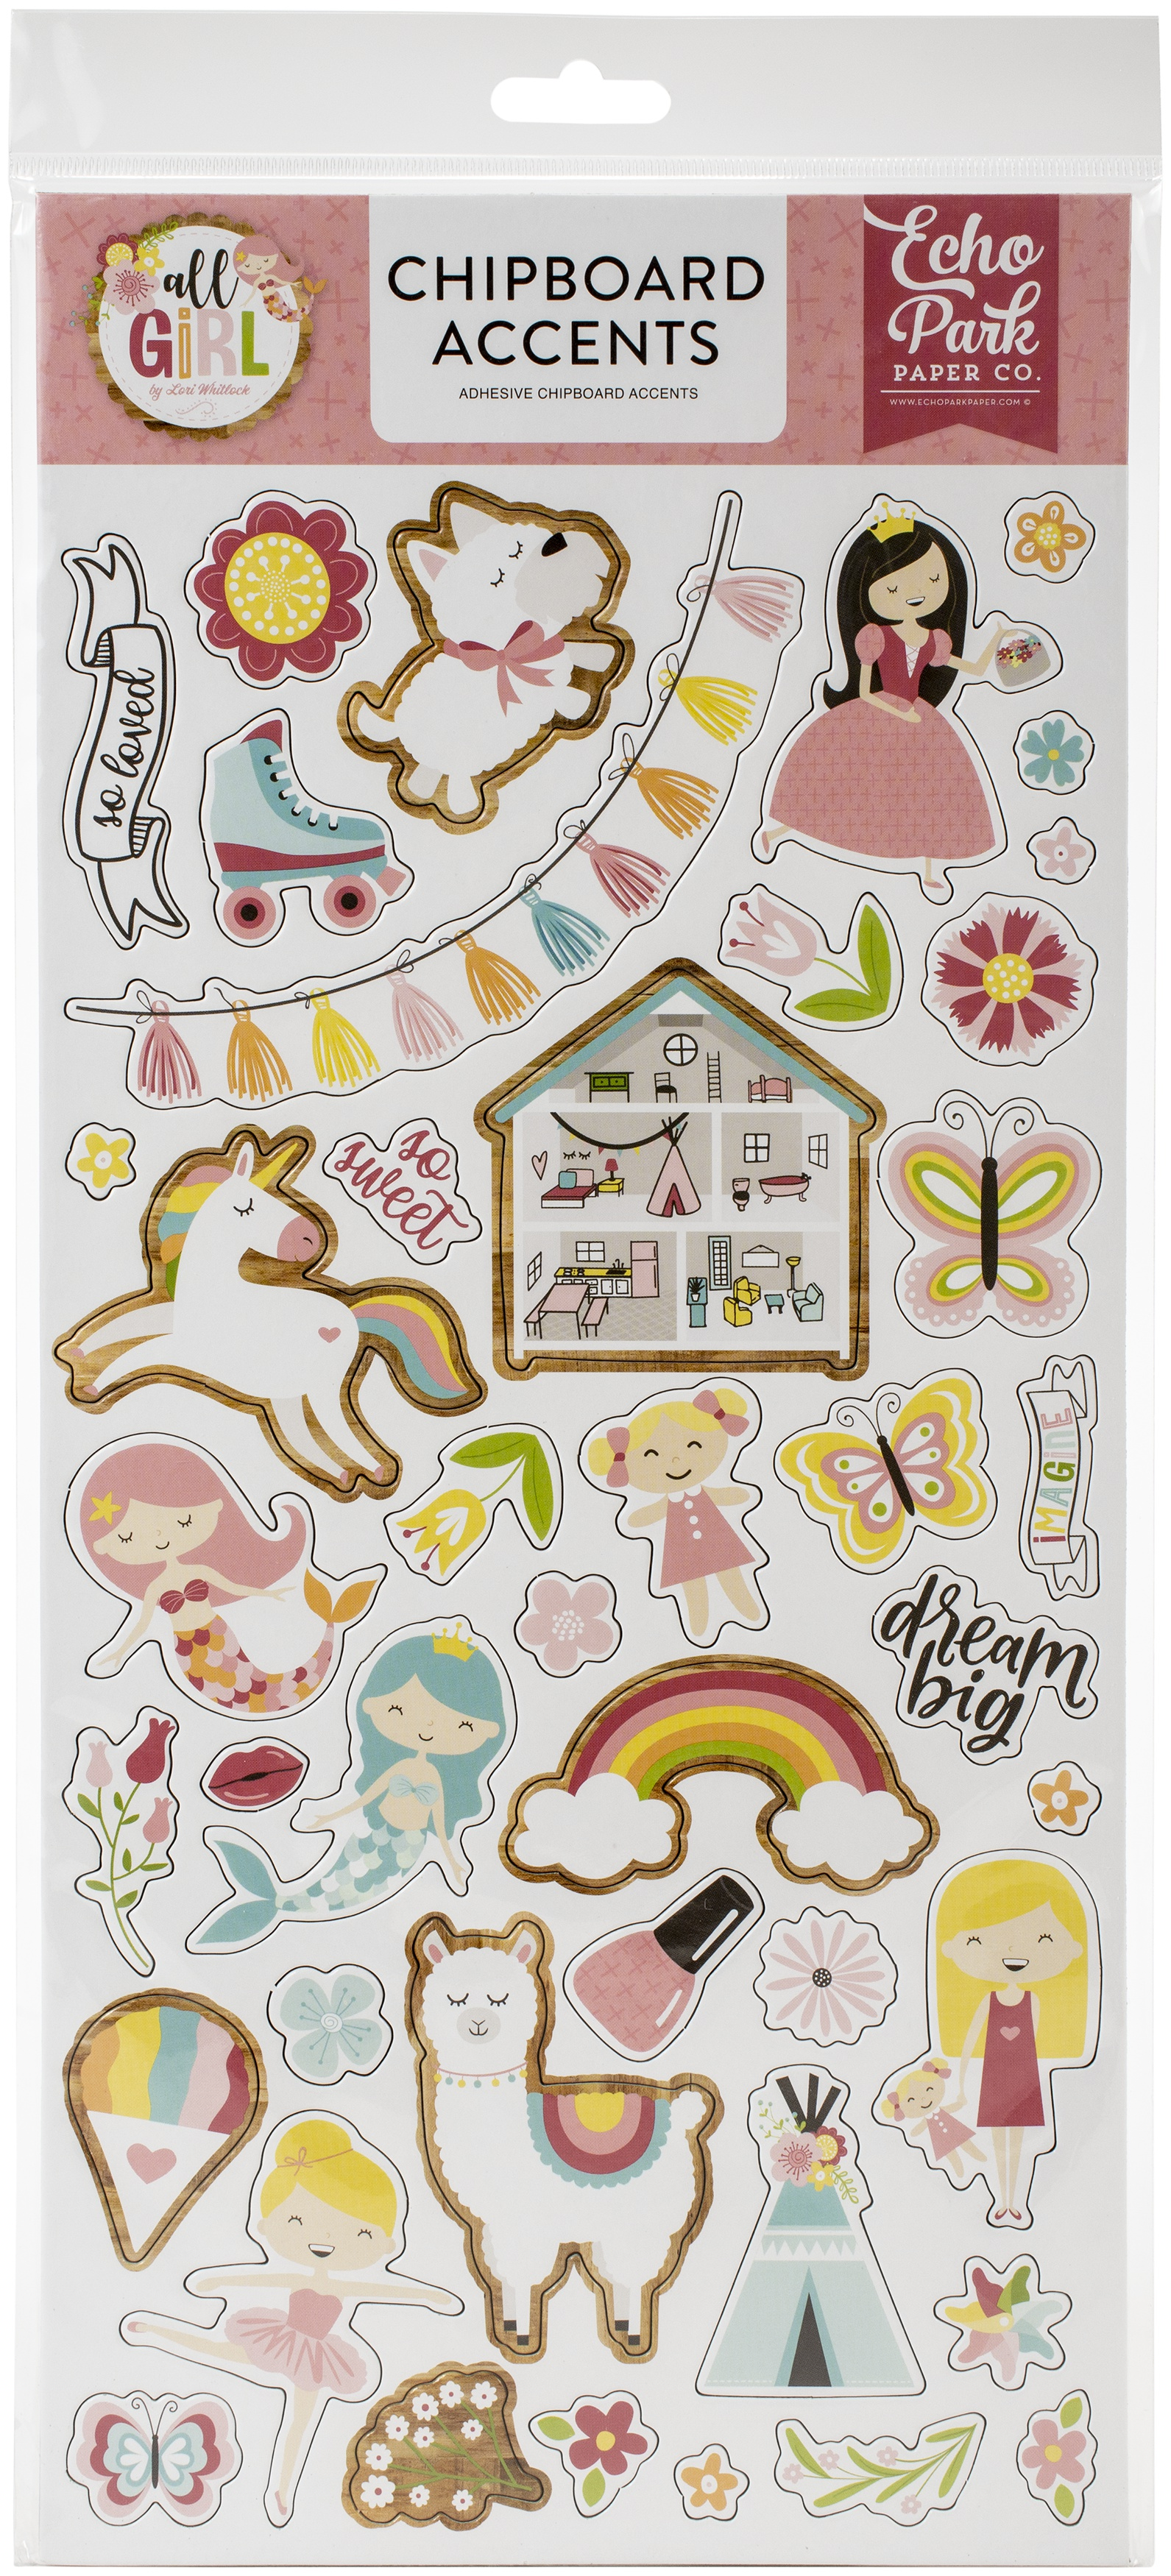 All Girl Chipboard 6X13-Accents